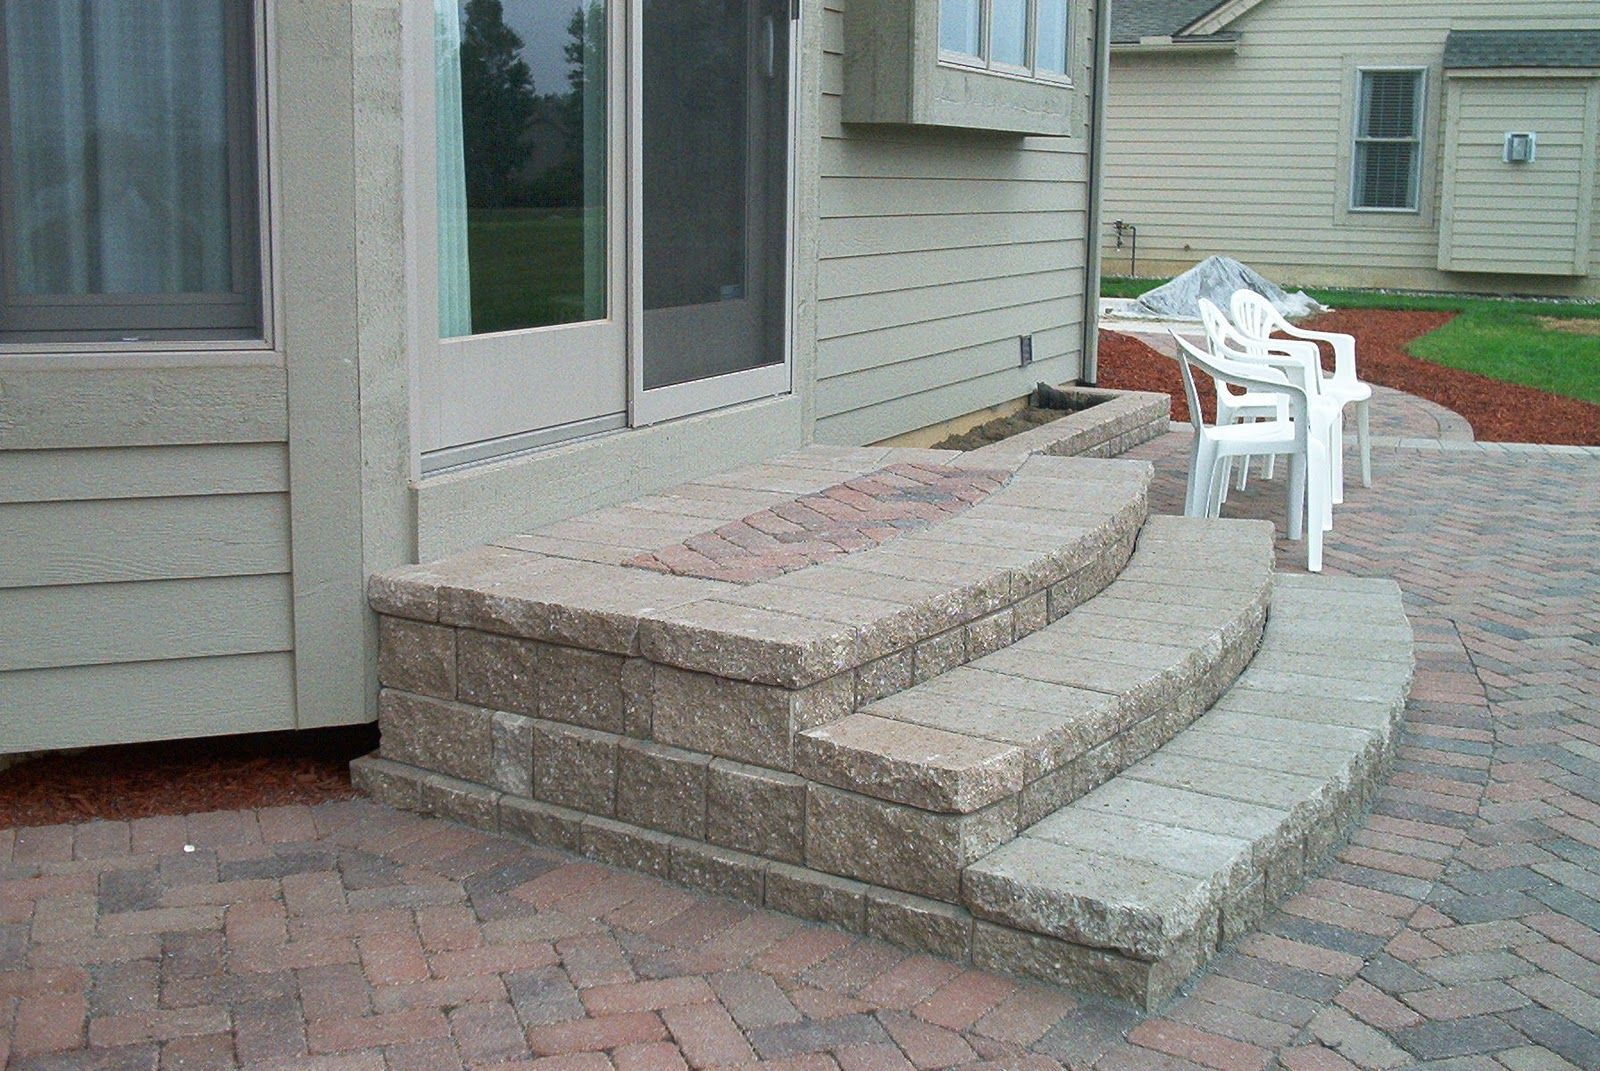 Brick doctor bill proper paver steps for bay windows for Brick steps design ideas